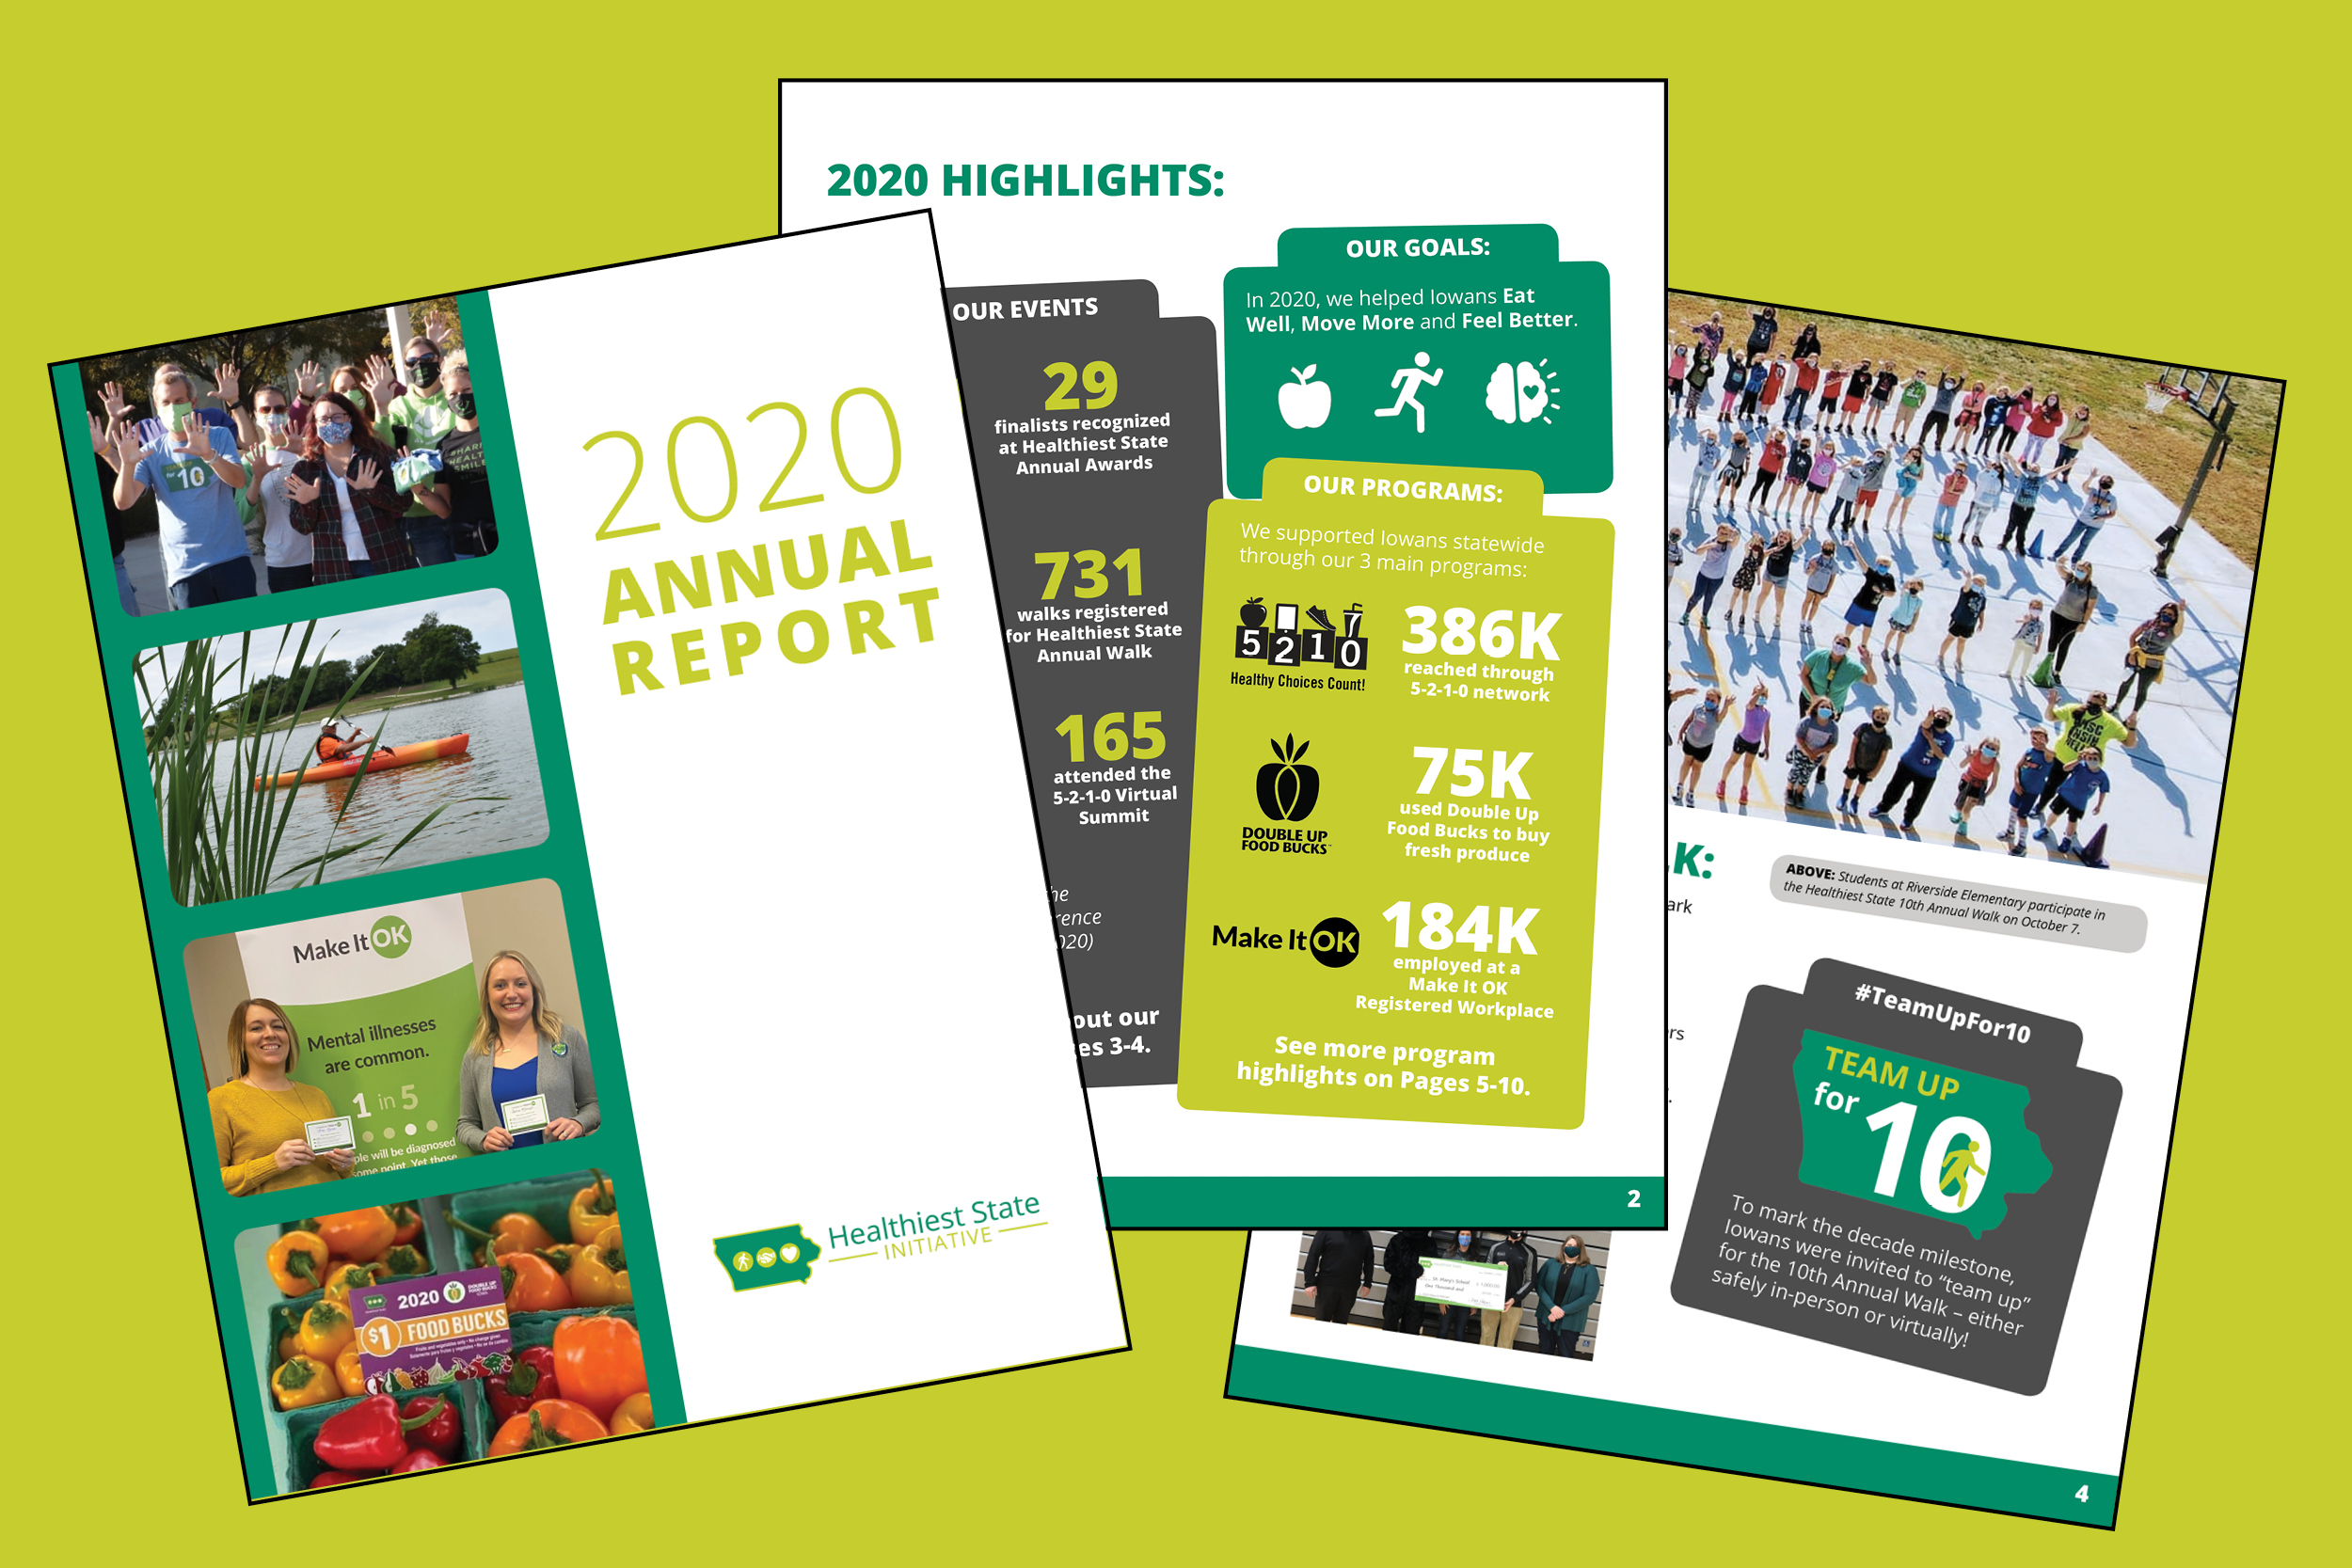 Annual Report: See HSI highlights from 2020